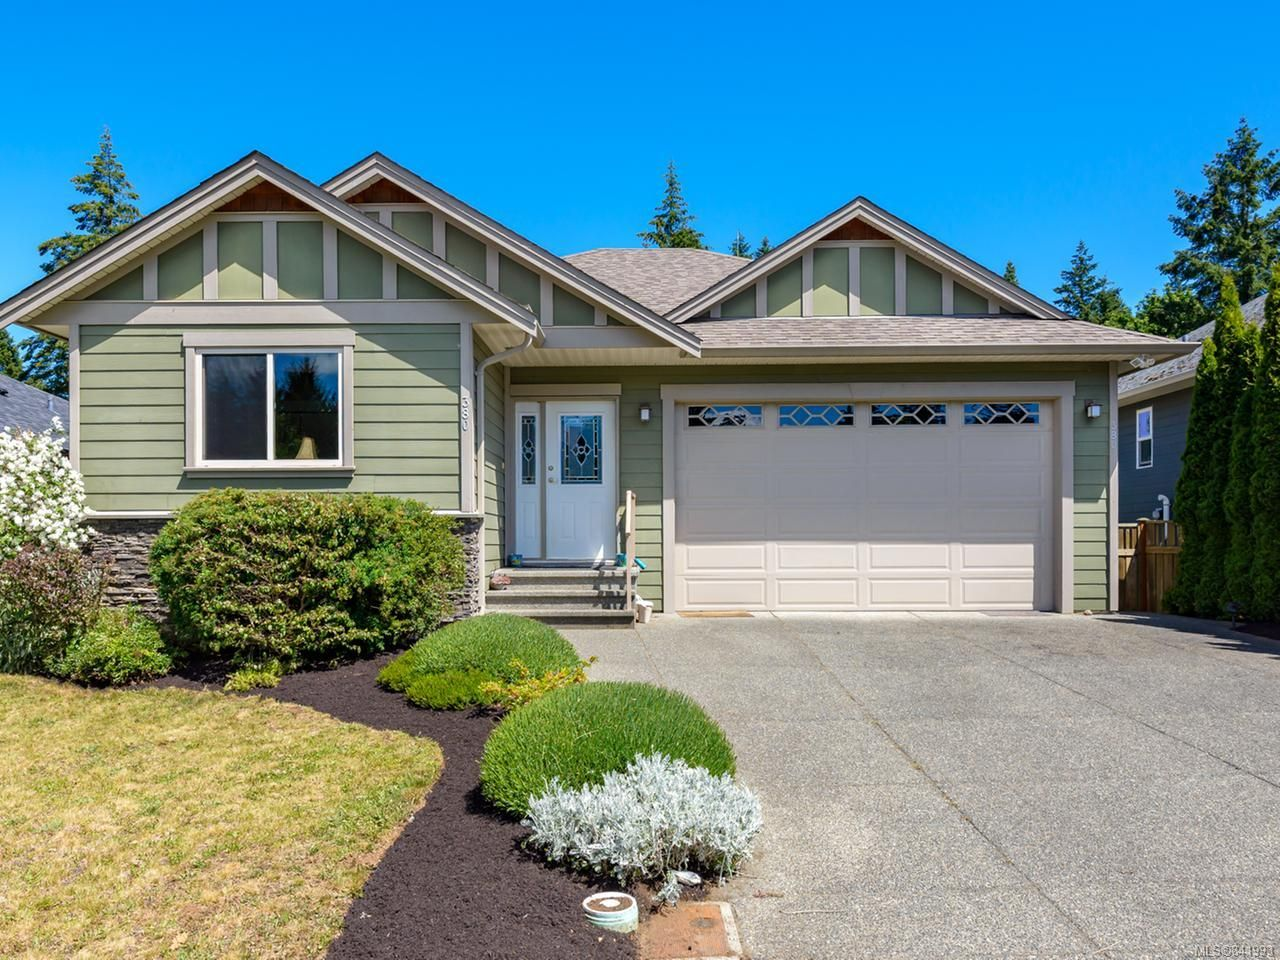 Main Photo: 380 Forester Ave in COMOX: CV Comox (Town of) House for sale (Comox Valley)  : MLS®# 841993